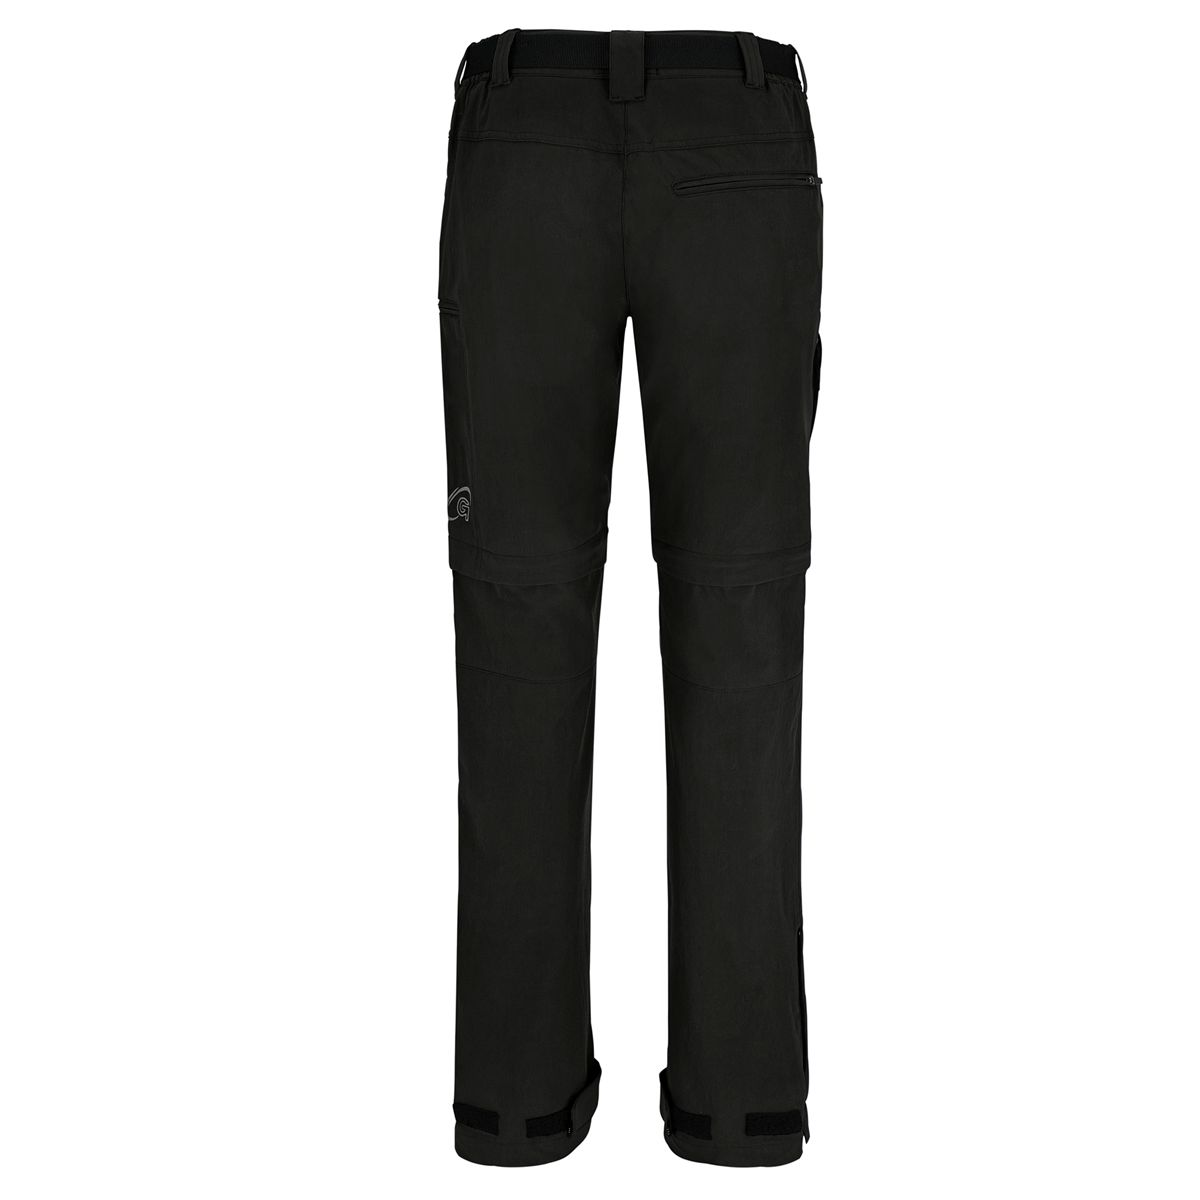 GONSO RUTH women's zip off trousers | Bukser